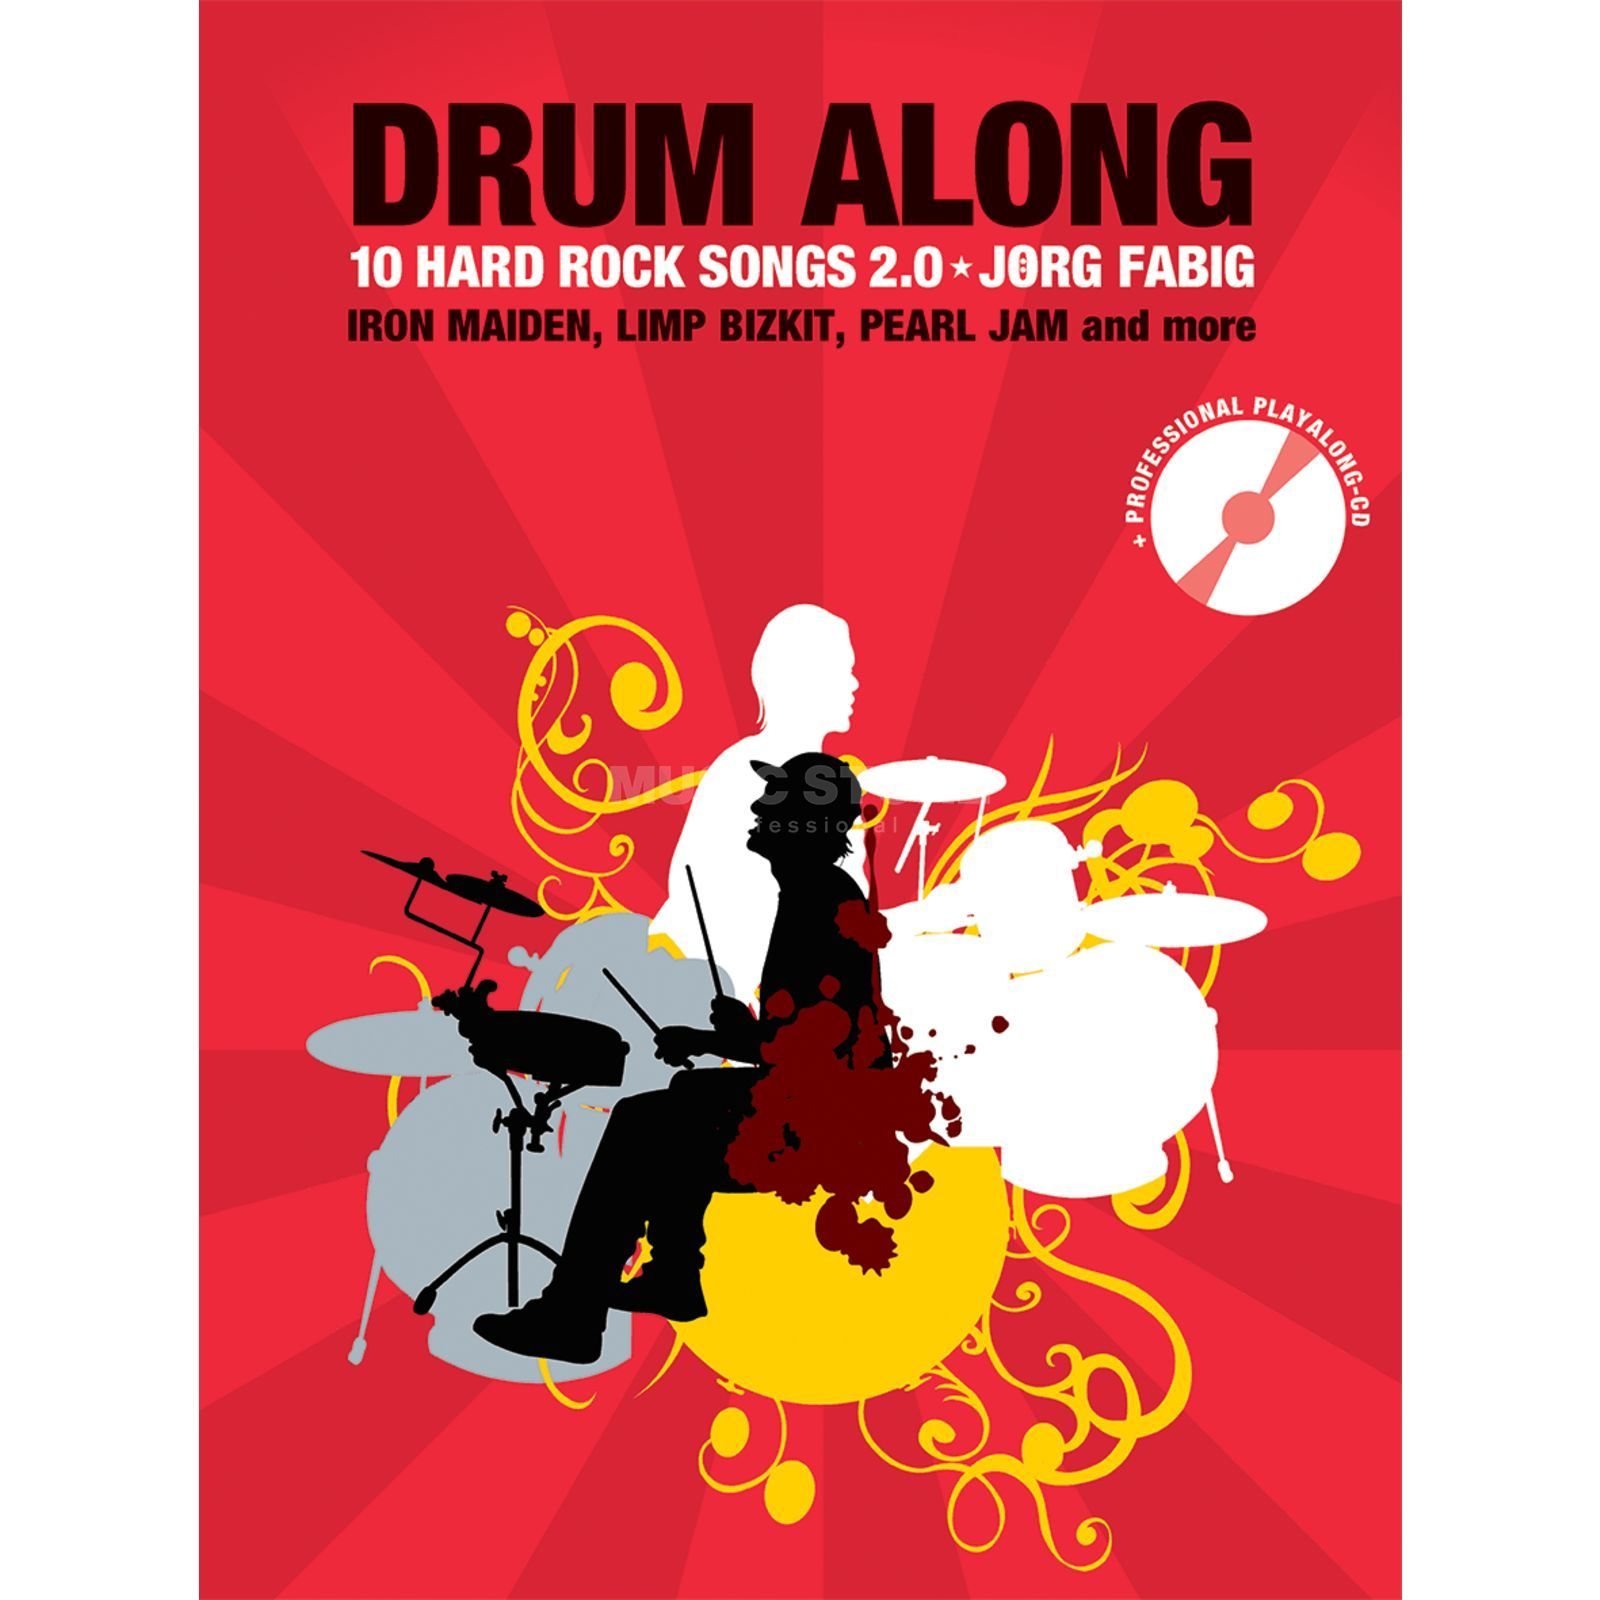 Bosworth Music Drum Along: 10 Hard Rock Songs 2.0, Jörg Fabig Produktbild